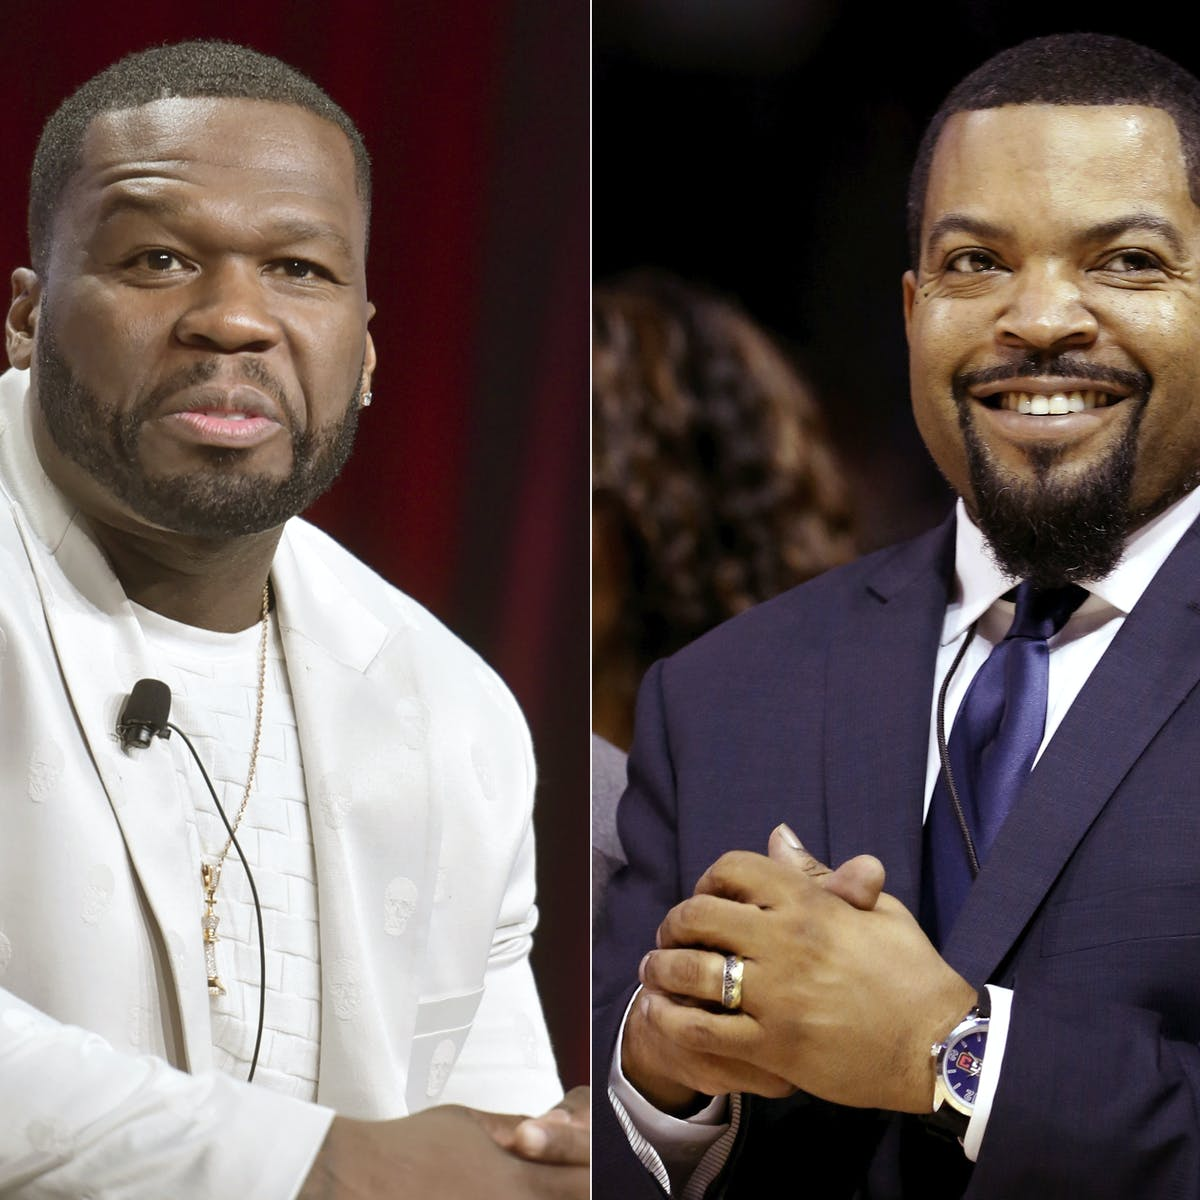 Are 50 Cent, Ice Cube and young Black men the supporters who will enable Trump's return to the White House? Not exactly